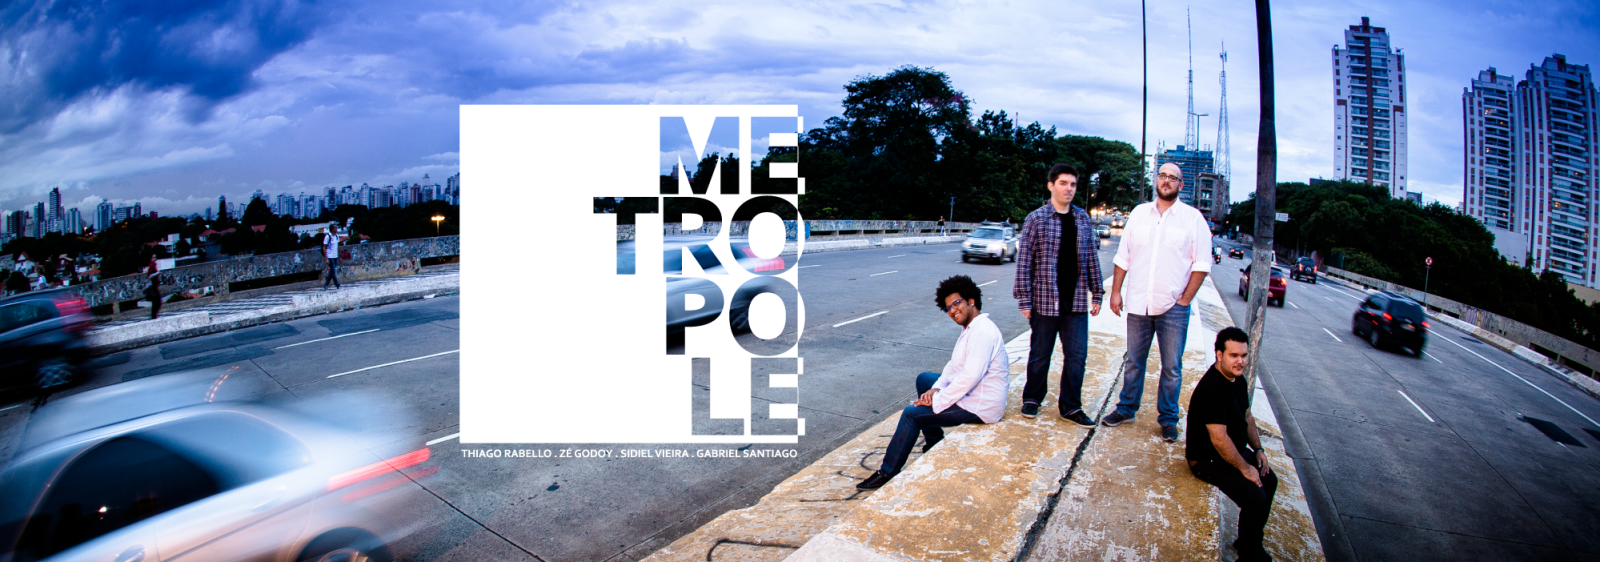 PageLines-Banner_Metropole-1600×562.png